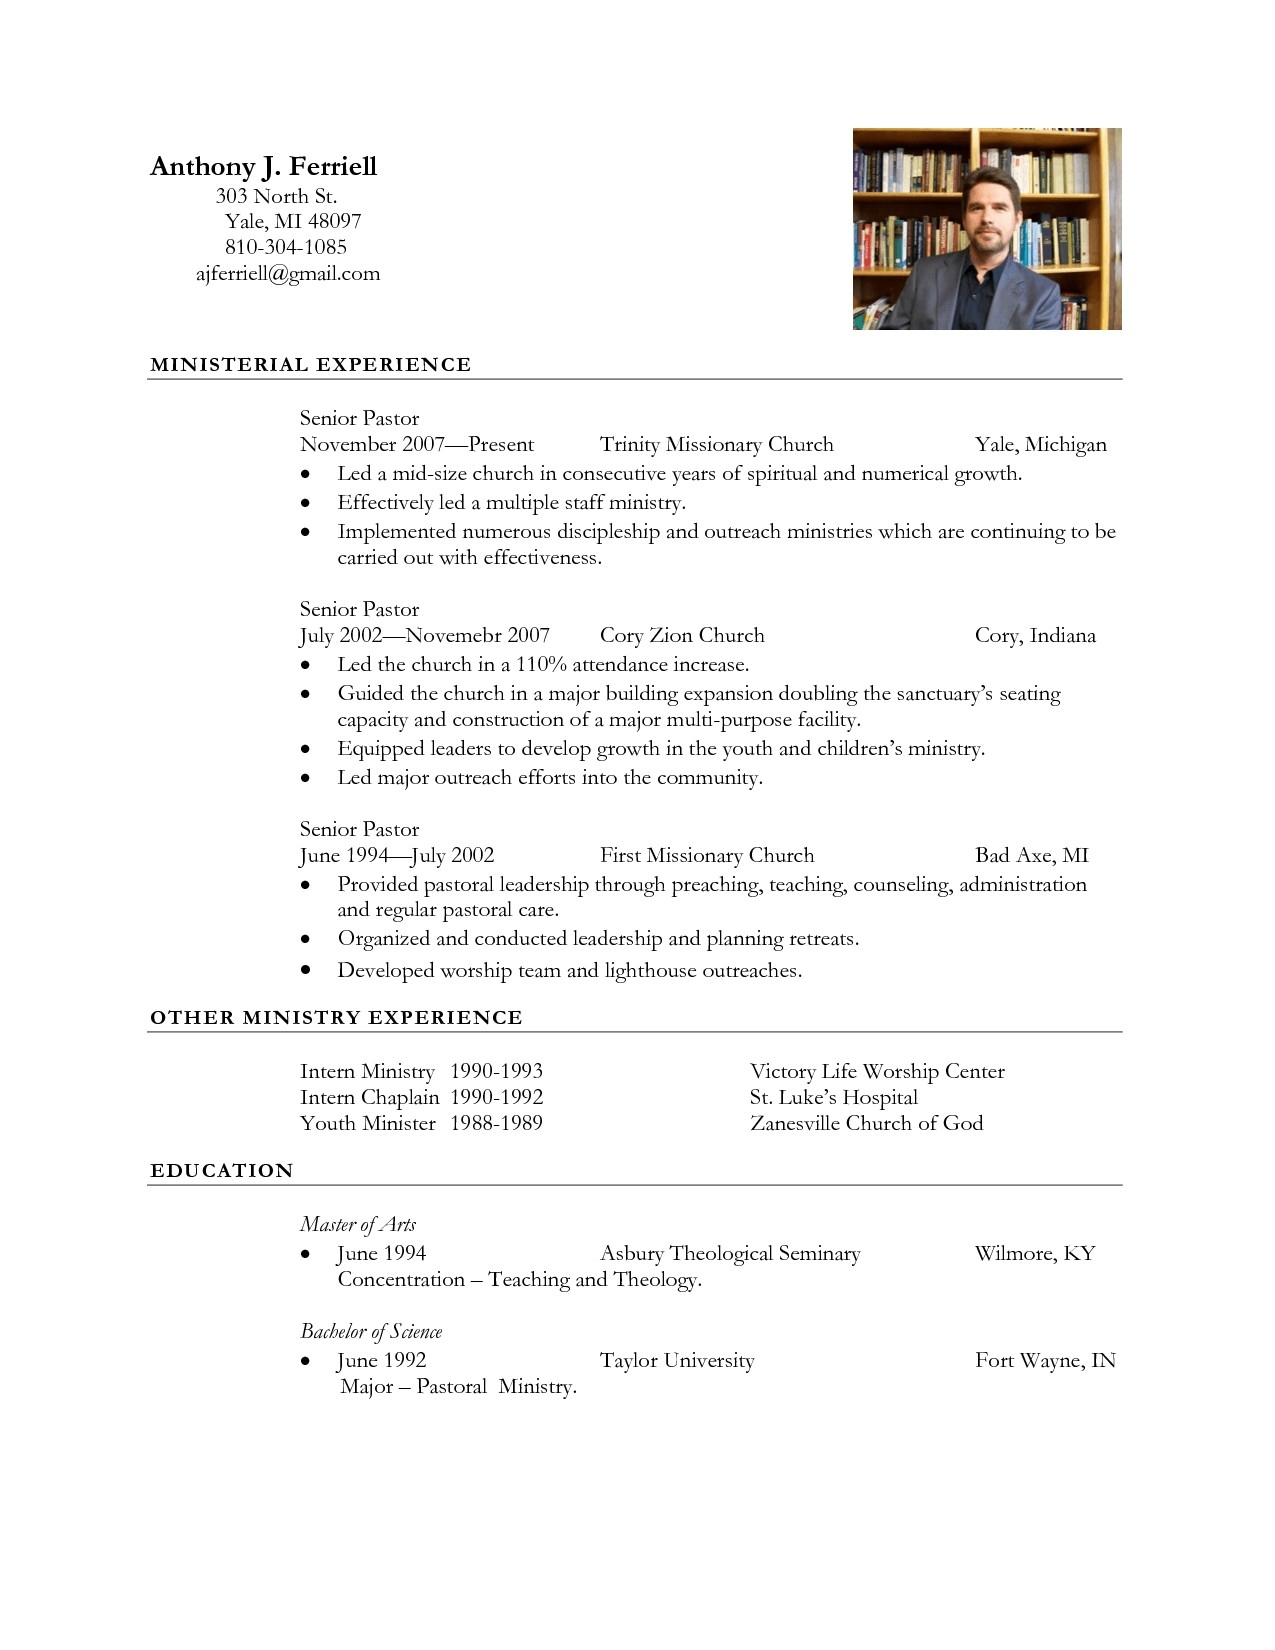 Pastoral Resume Template - Download Fresh Pastoral Resume